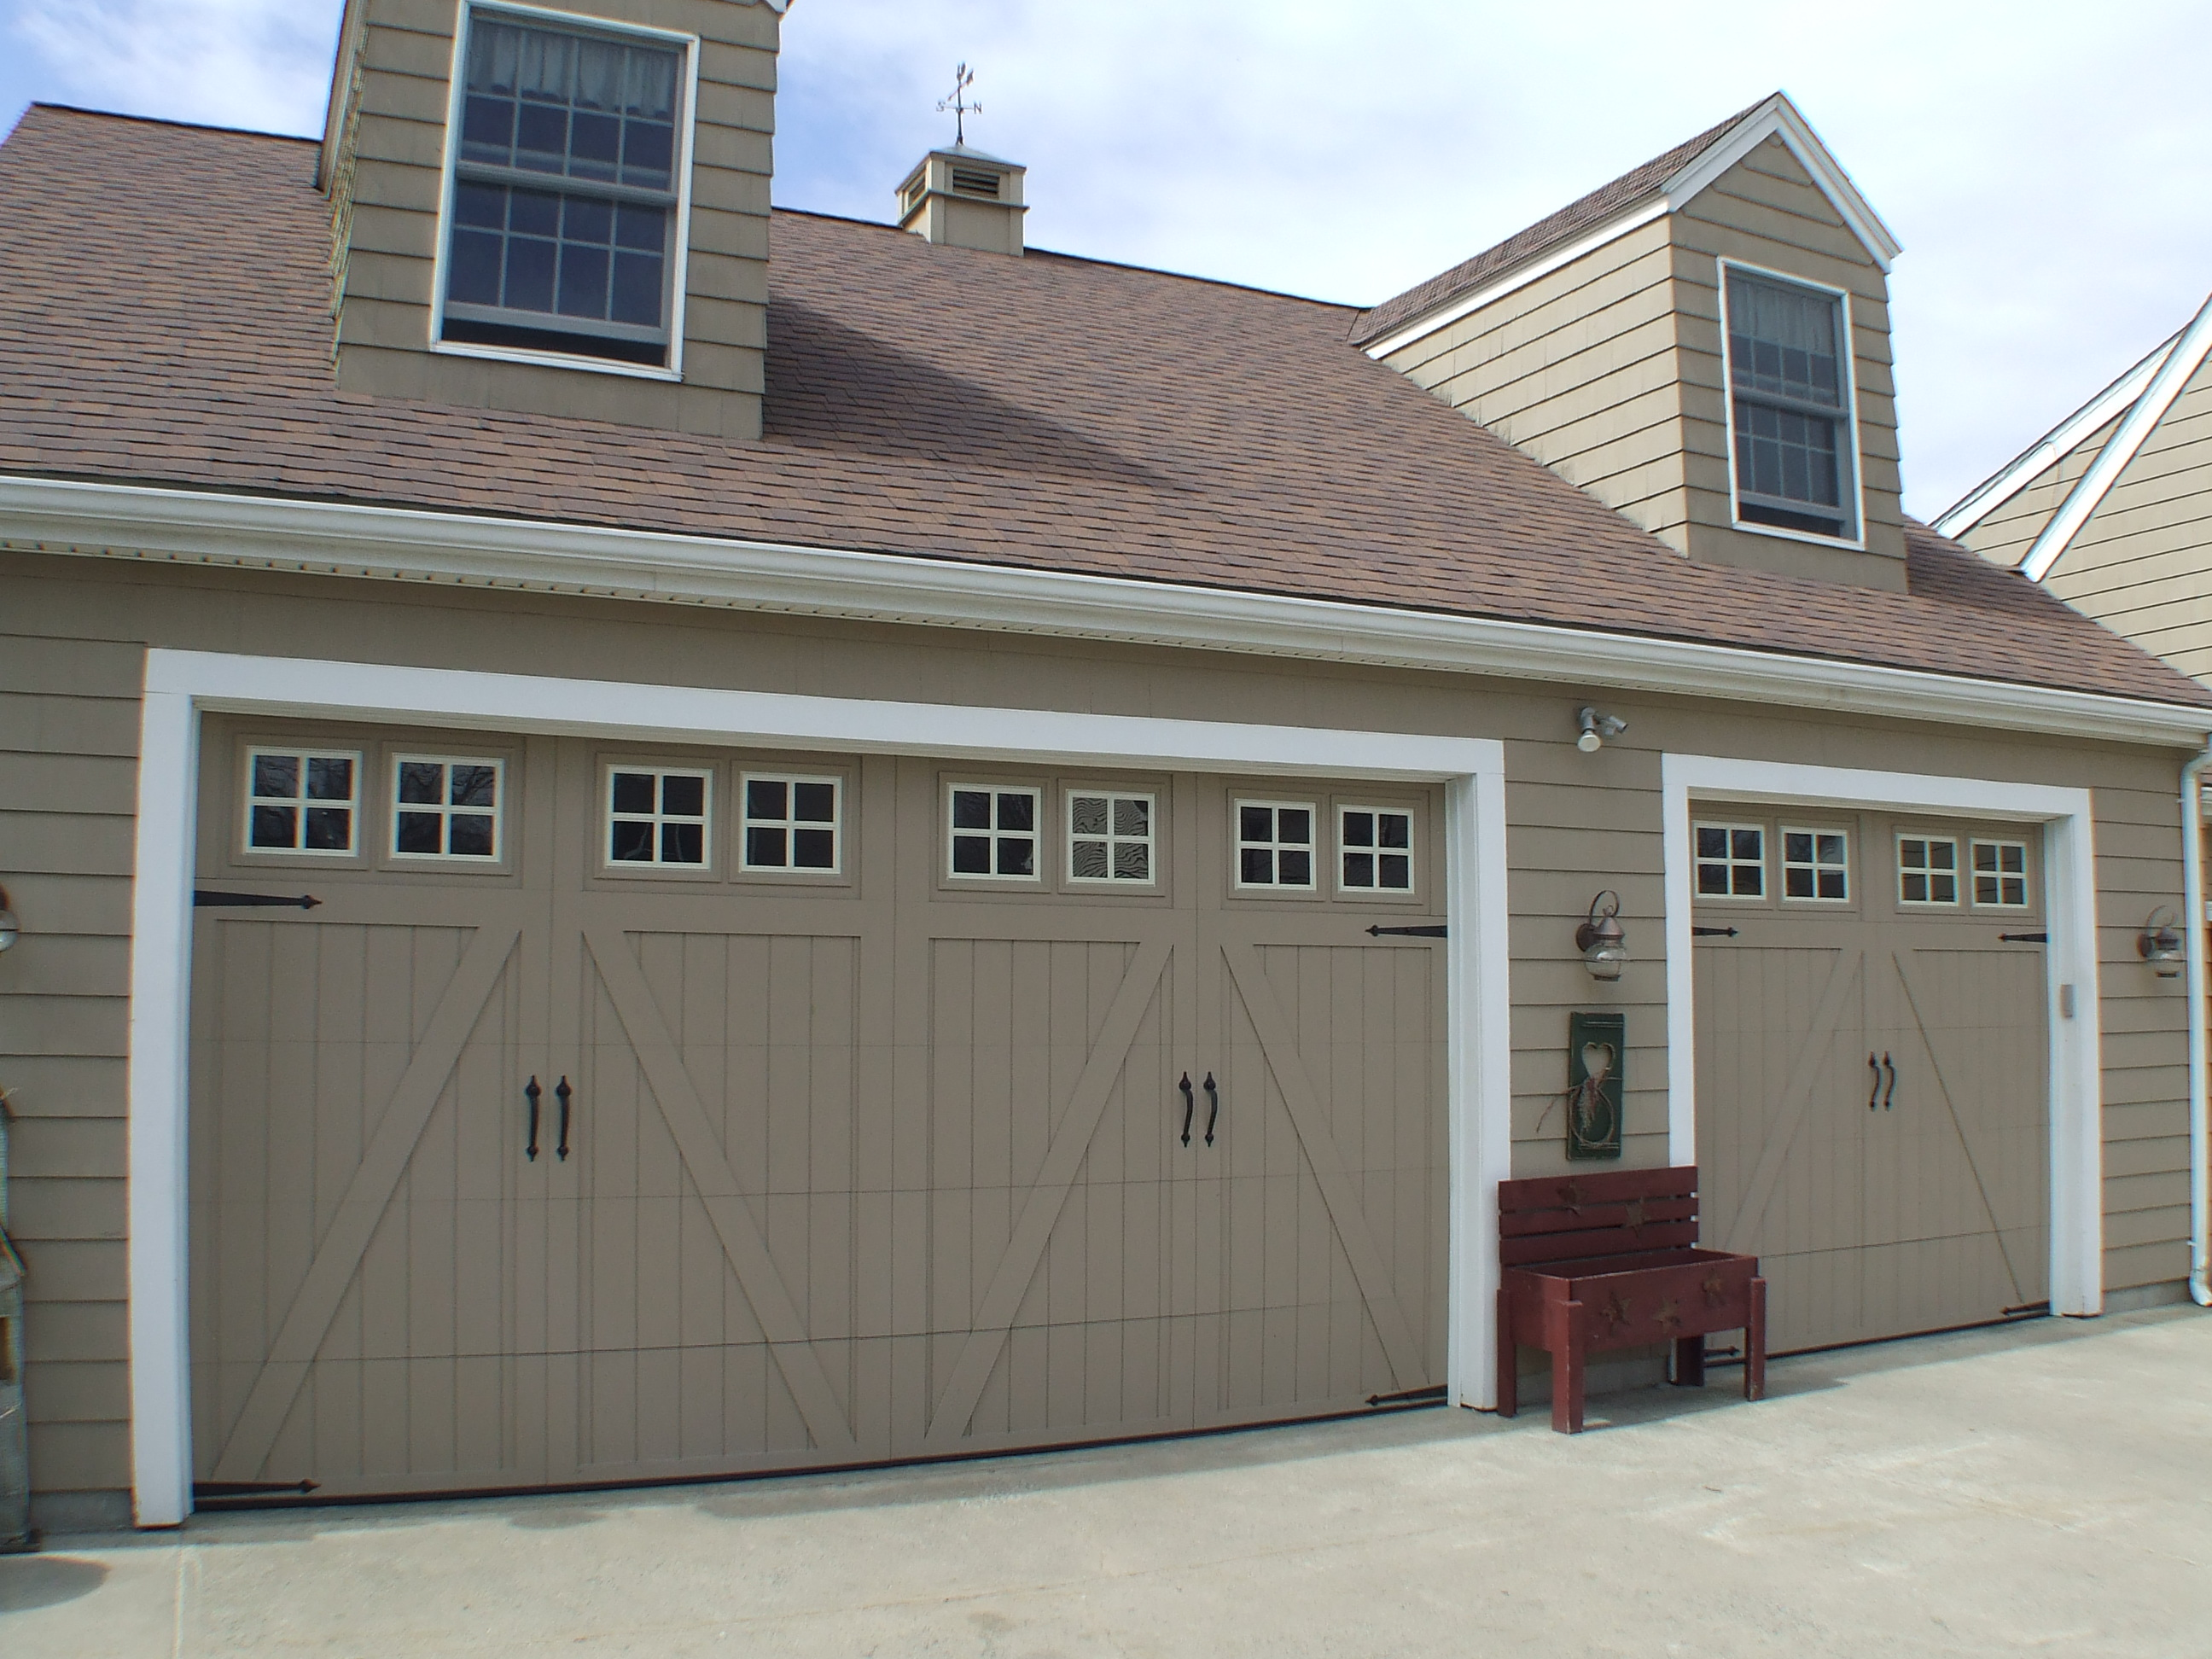 Woonsocket Door Sales Servicing Garage Doors And Garage Door Openers In RI,  MA U0026 CT Since 1935